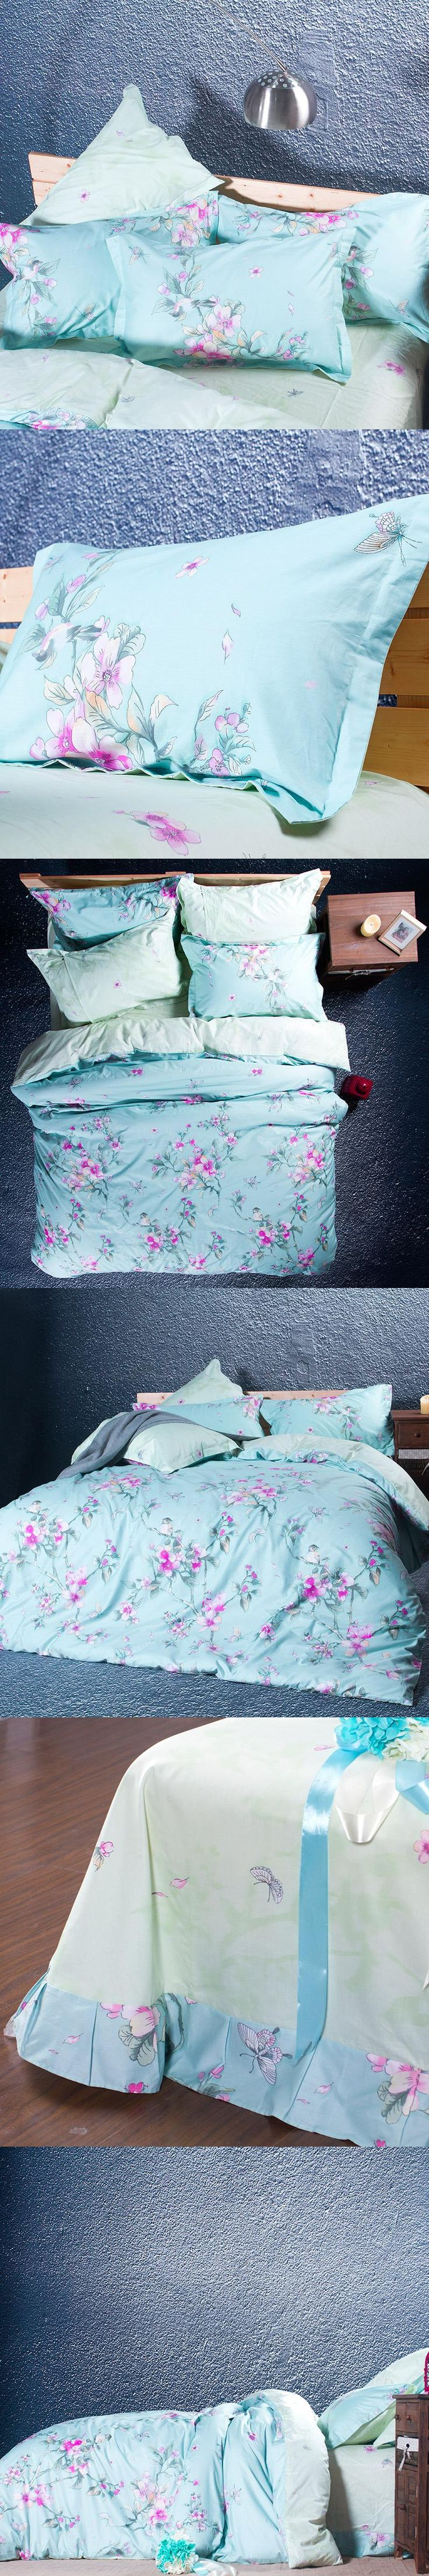 Cotton Home Textile Peach 4pcs Bedding Set Size for Twin Full Queen king  Home Hotel Bed